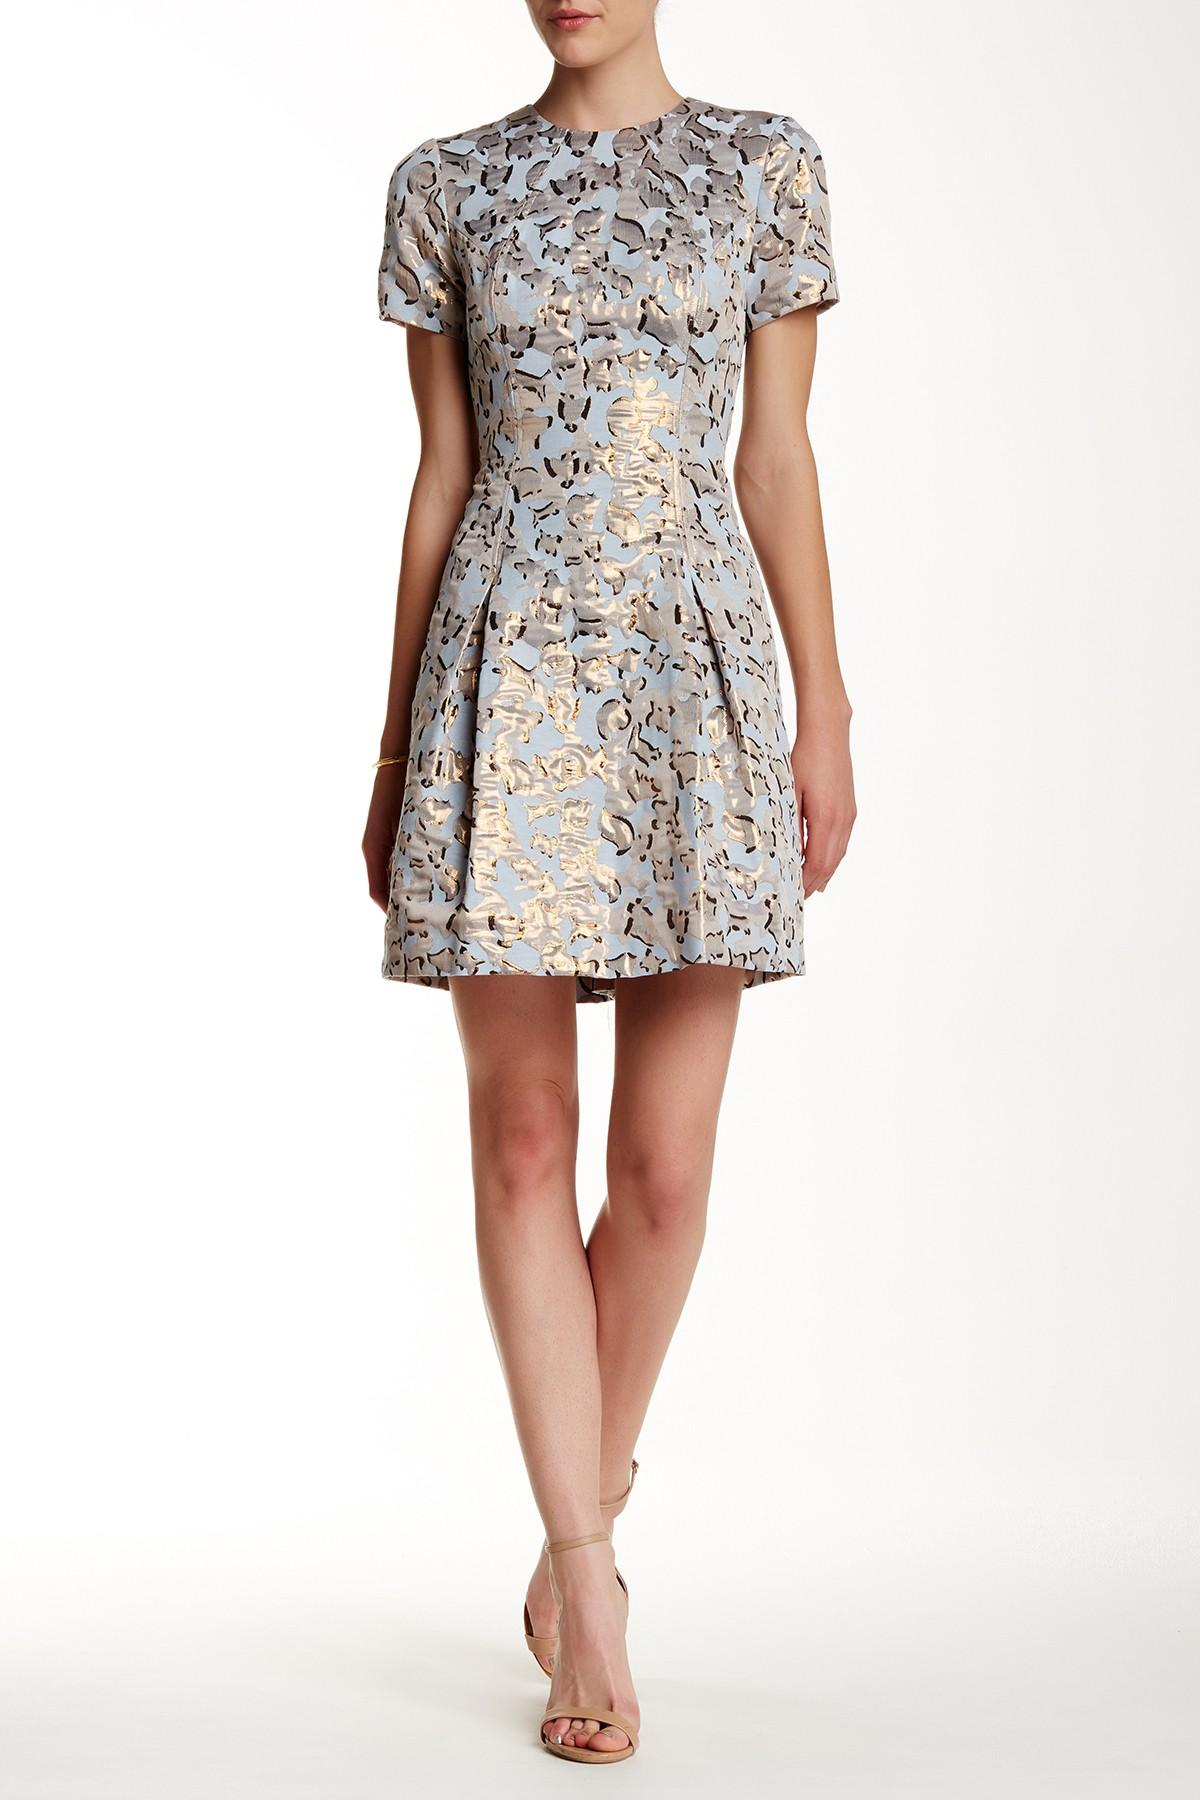 Lyst Vince Camuto Jacquard Fit Amp Flare Dress